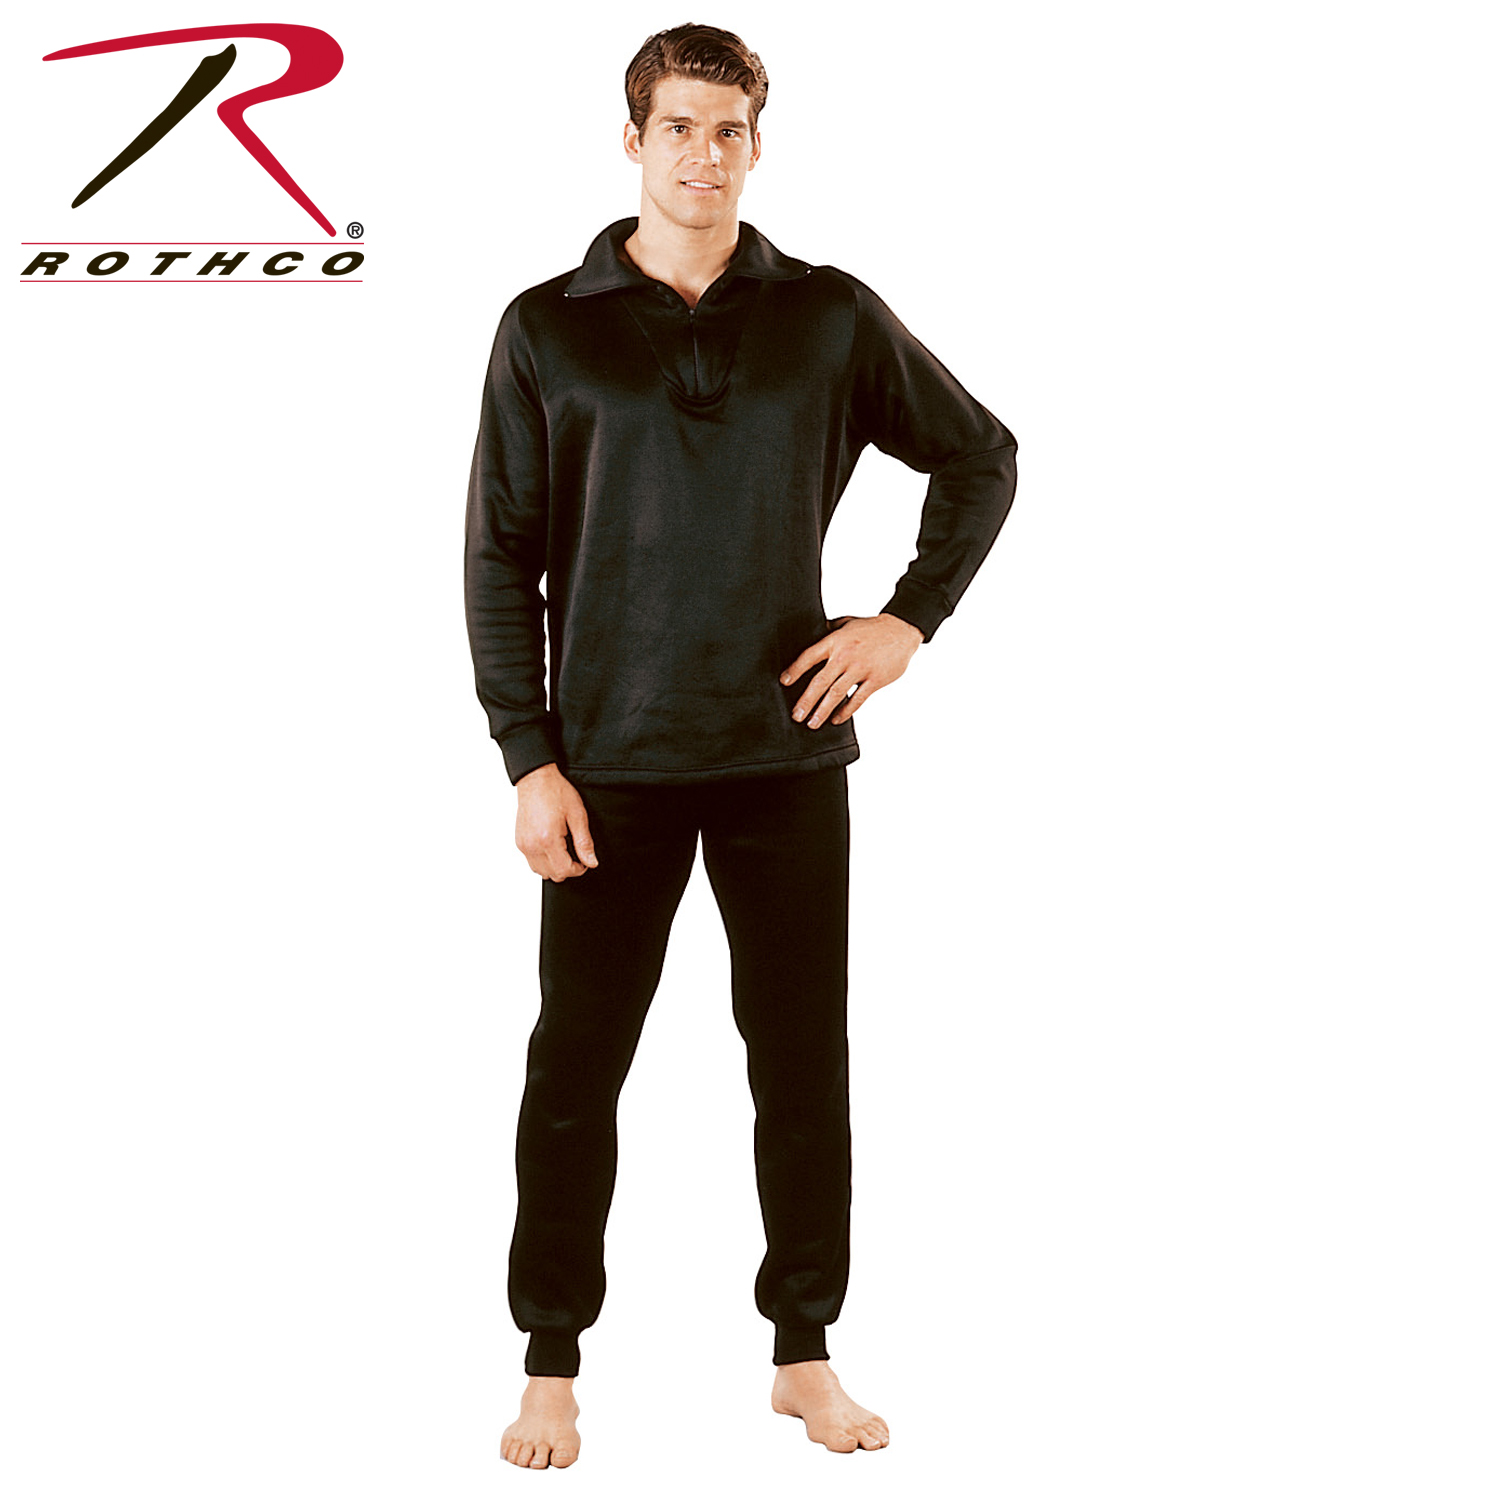 Rothco Thermal Knit Underwear Top